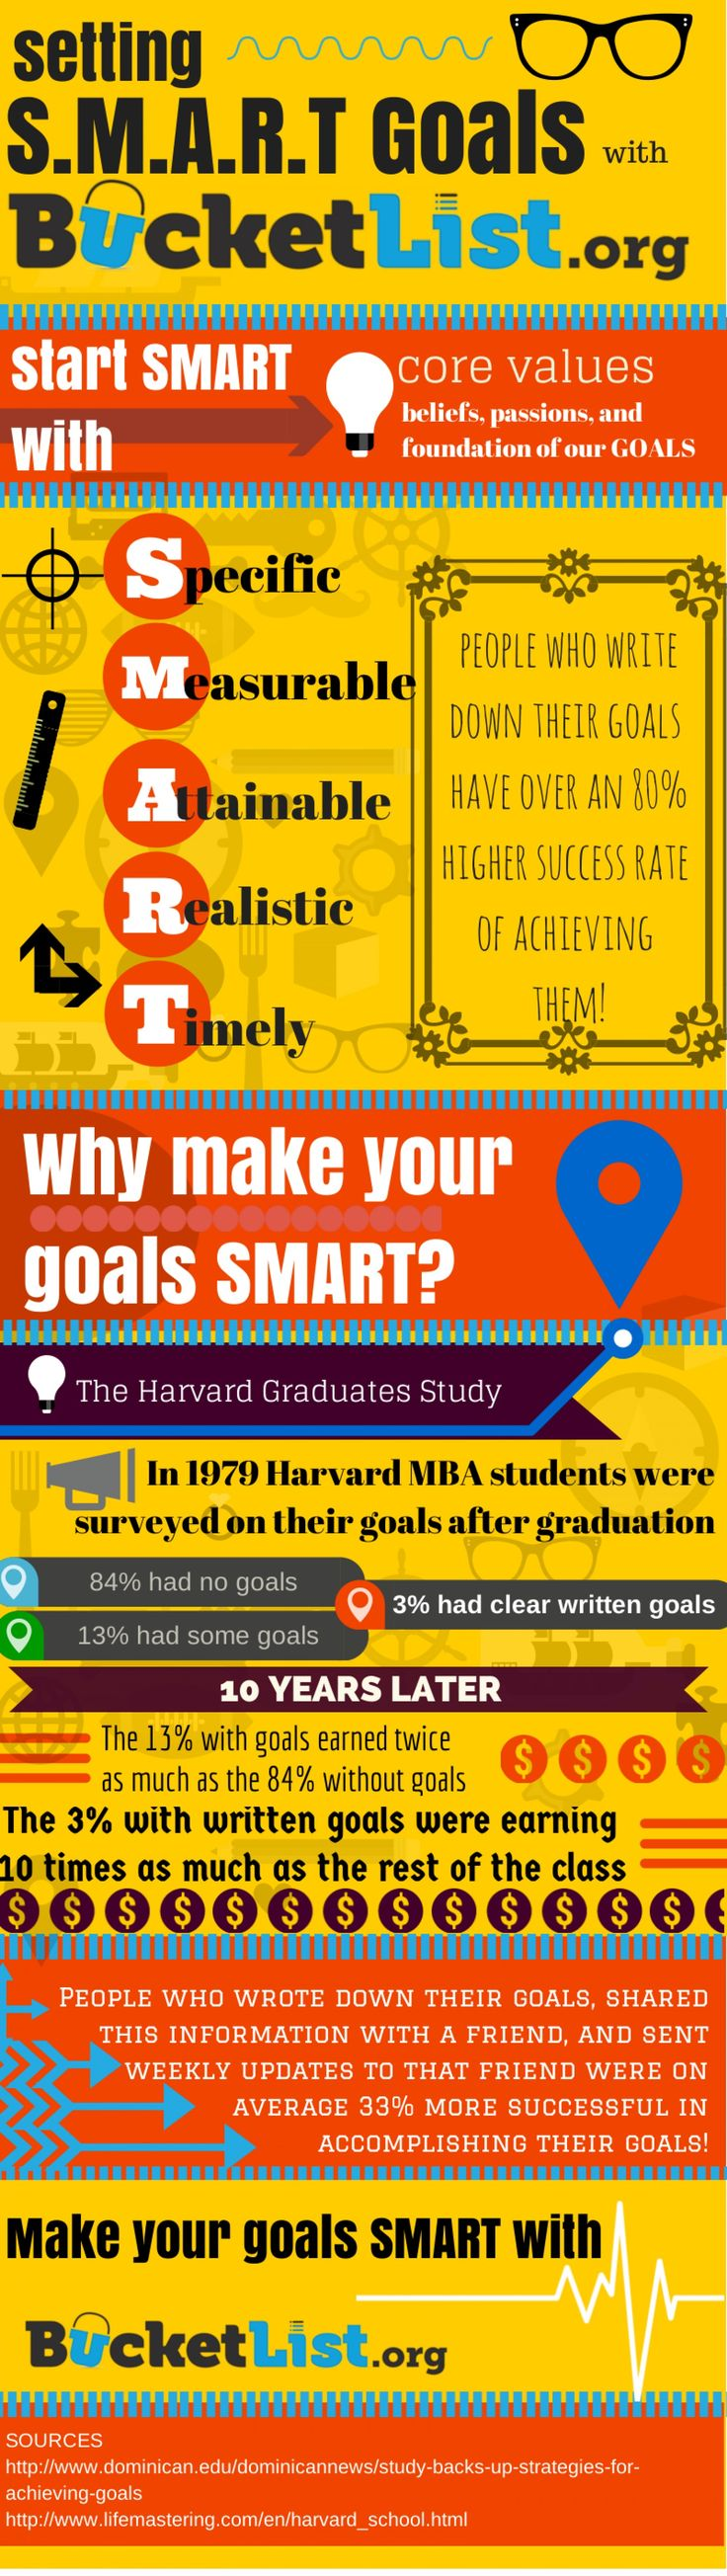 best images about college infographics biggest setting smart goals infographic good for educators and students